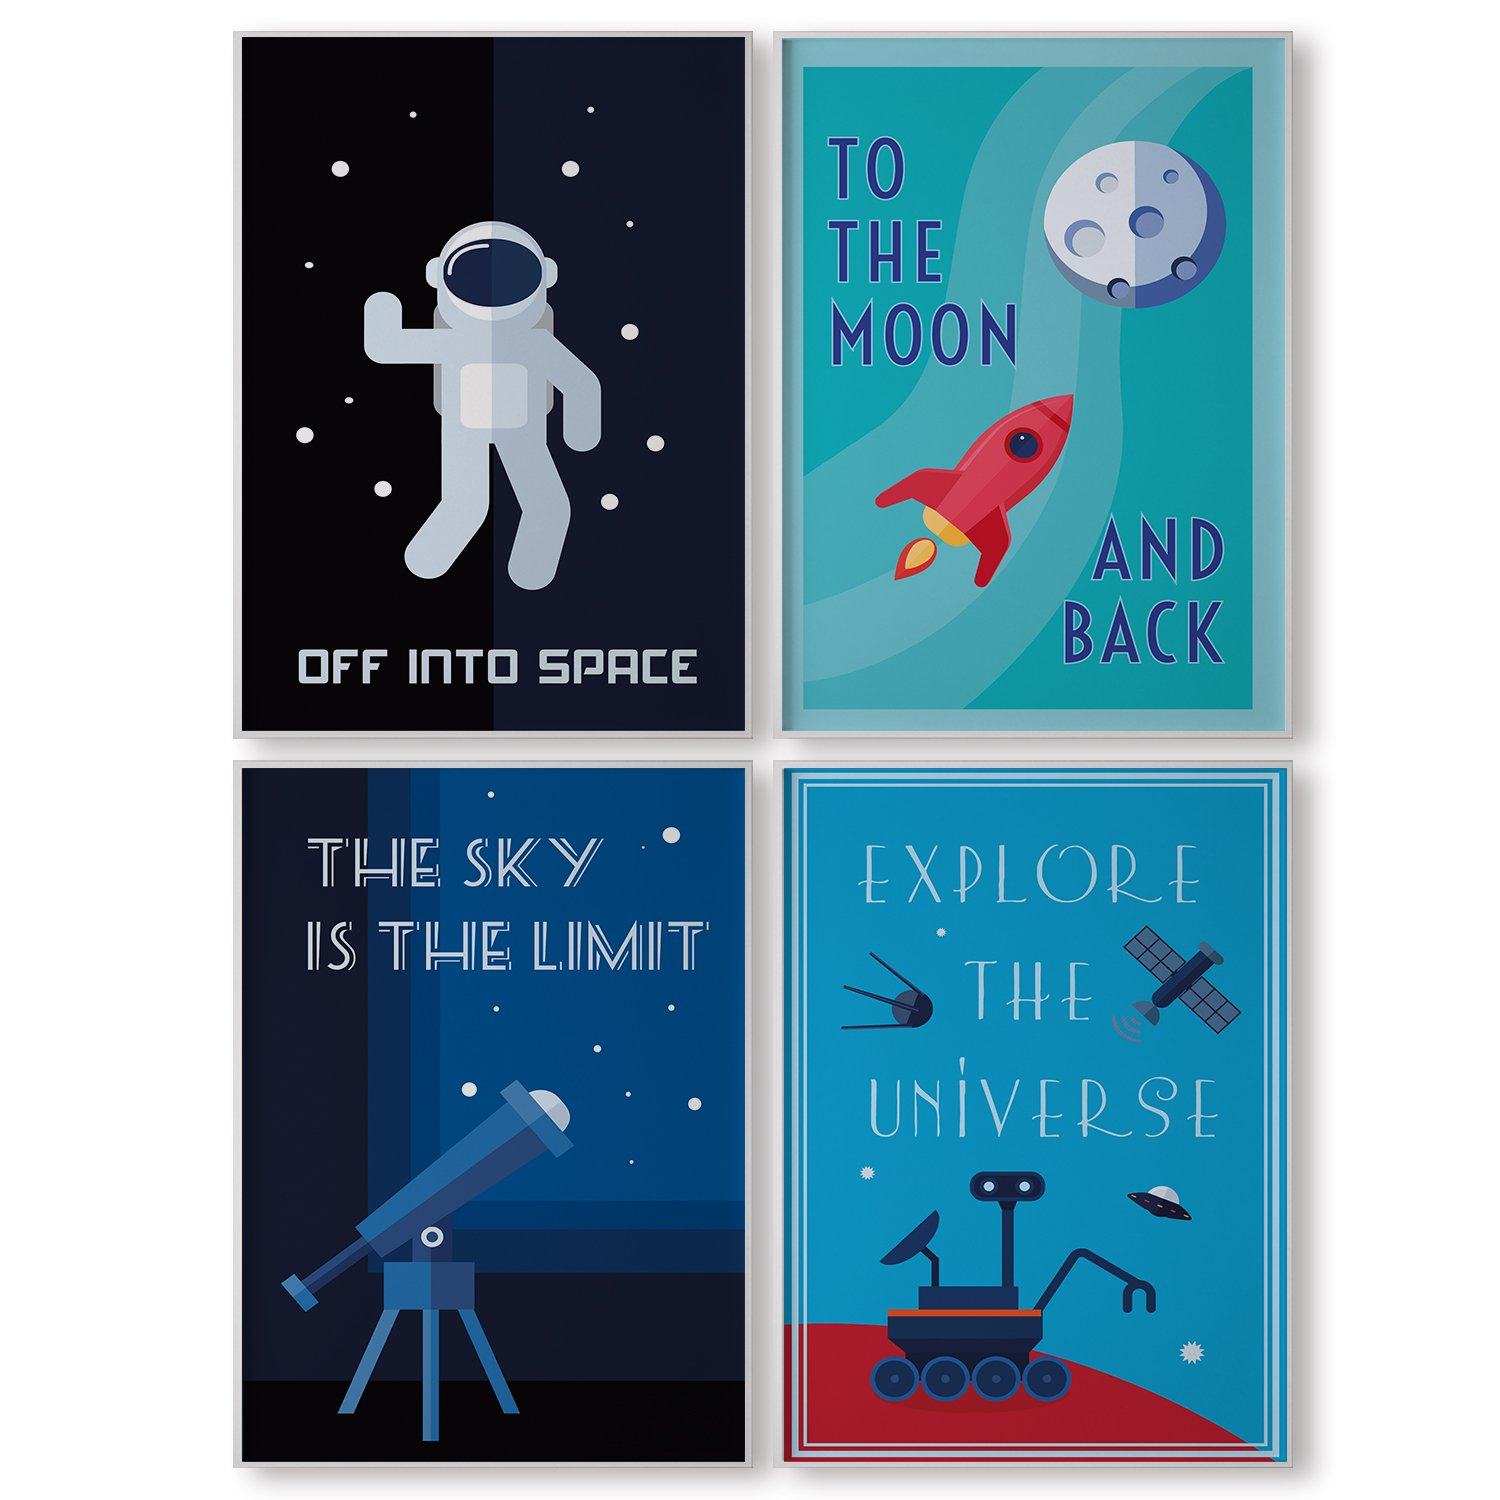 Pillow & Toast Kids Wall Art 11x17in, Posters for Boys Room Astronaut-Universe Poster, Children Bedroom Room or Science Classroom Decoration, Baby Boys and Girls Nursery Wall Art Set by Pillow and Toast